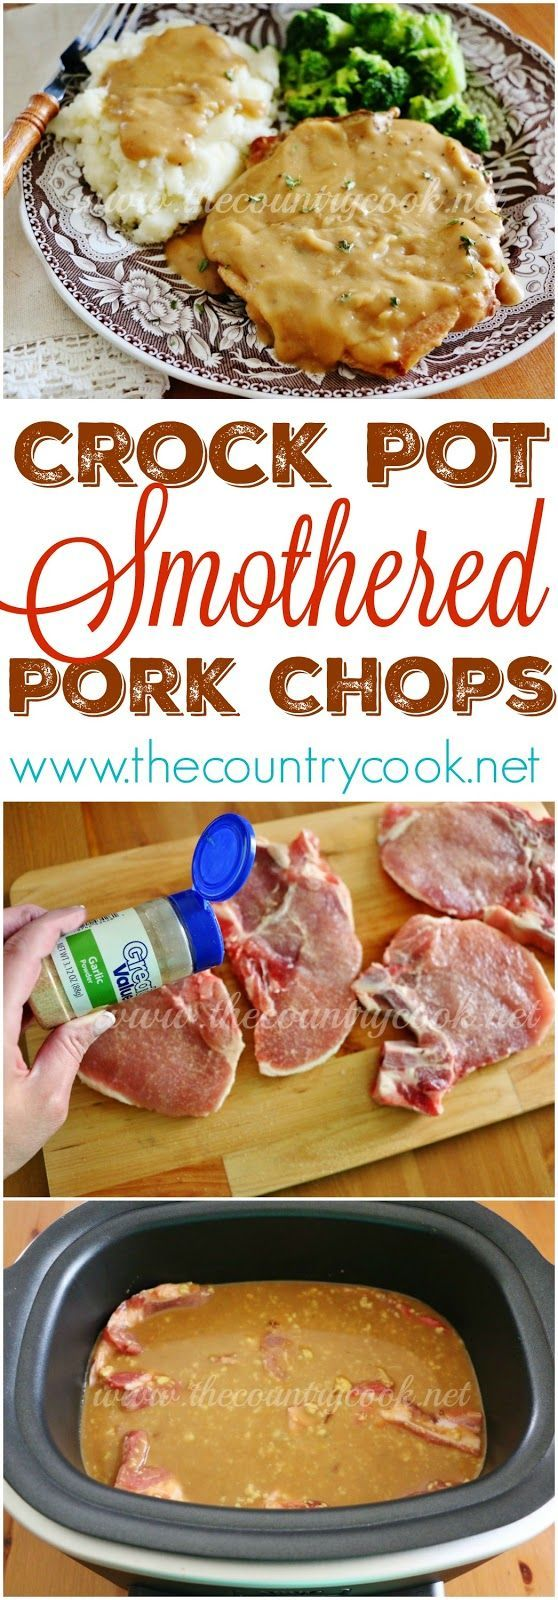 Crock Pot Smothered Pork Chops recipe from The Country Cook. Throw all the ingredients into the crock pot! I love recipes like this. And it makes its' own gravy. Perfect for mashed potatoes!